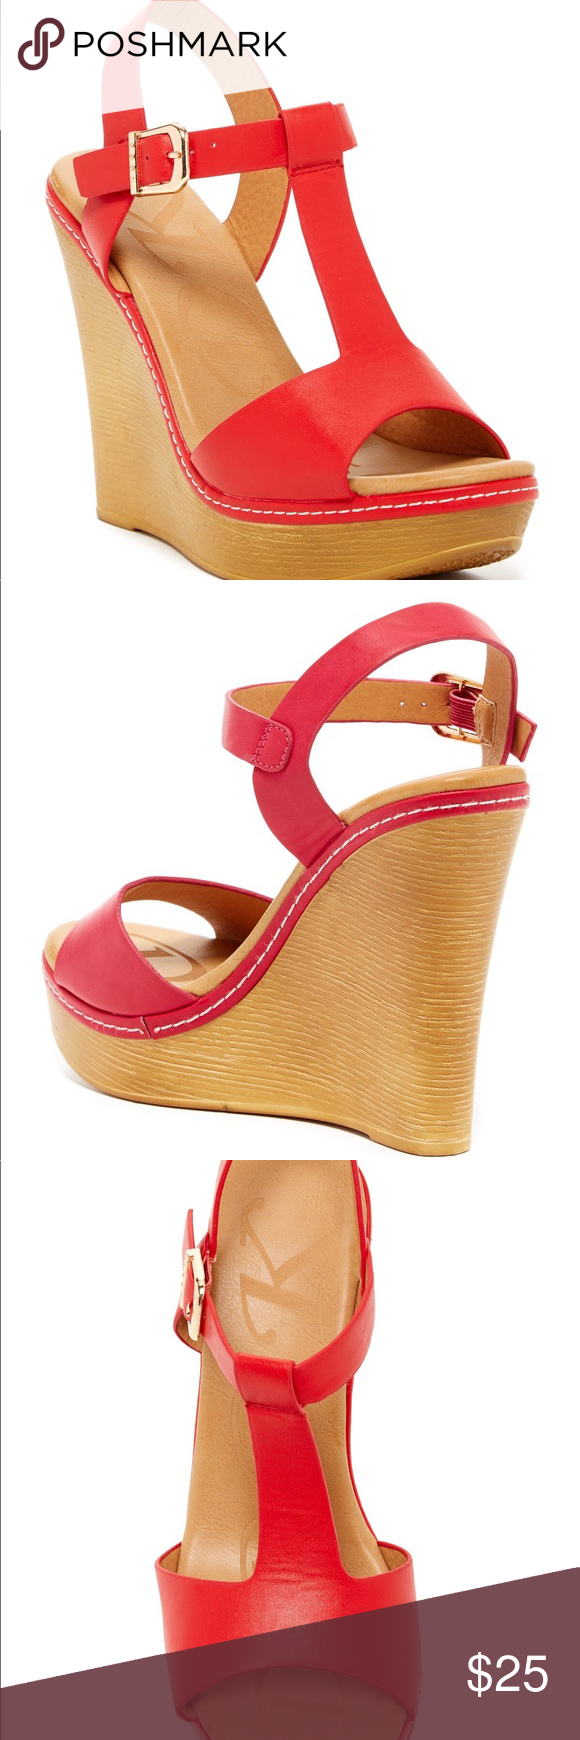 Elegant Footwear Nassa Wedge Sandal NWOT This wedge sandal